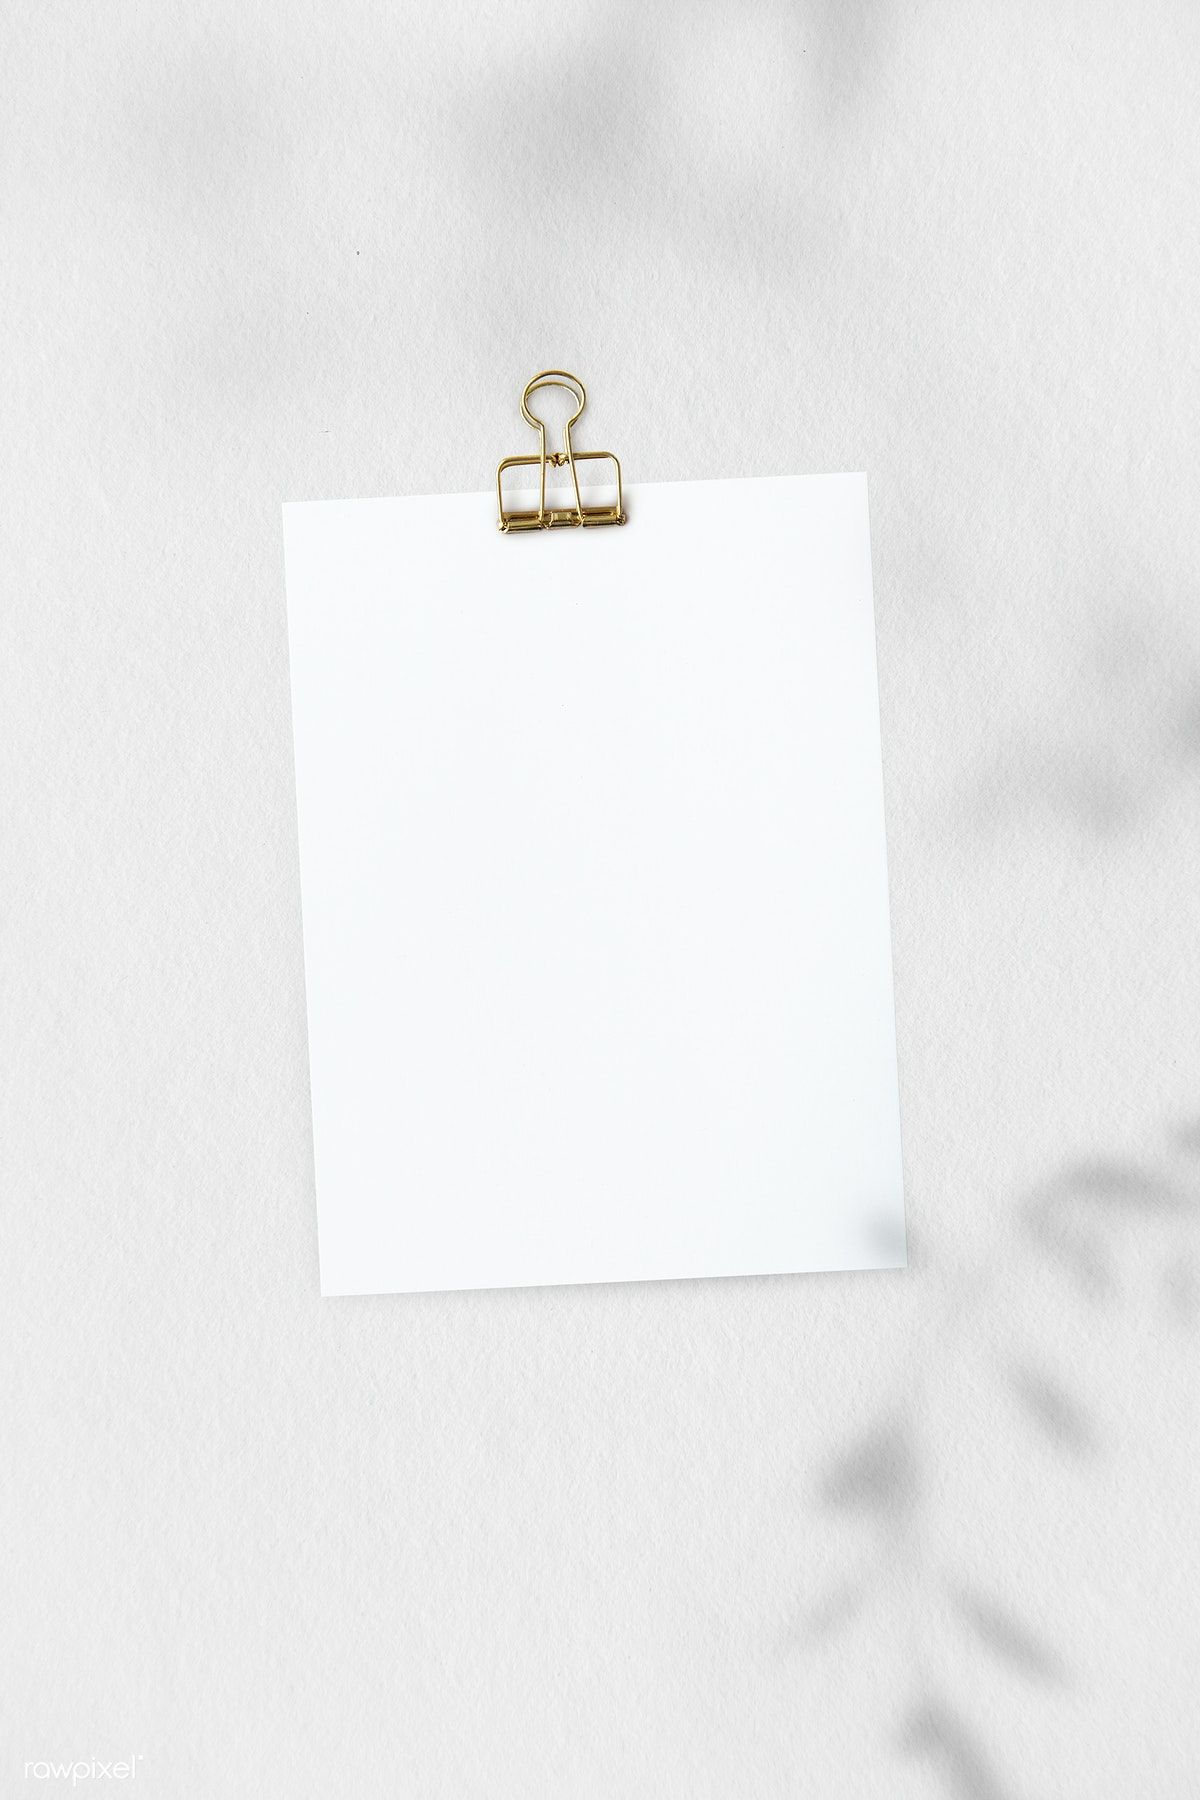 Download Premium Psd Of Blank Plain White Paper Template 1202034 Paper Template Instagram Frame Template Paper Template Free